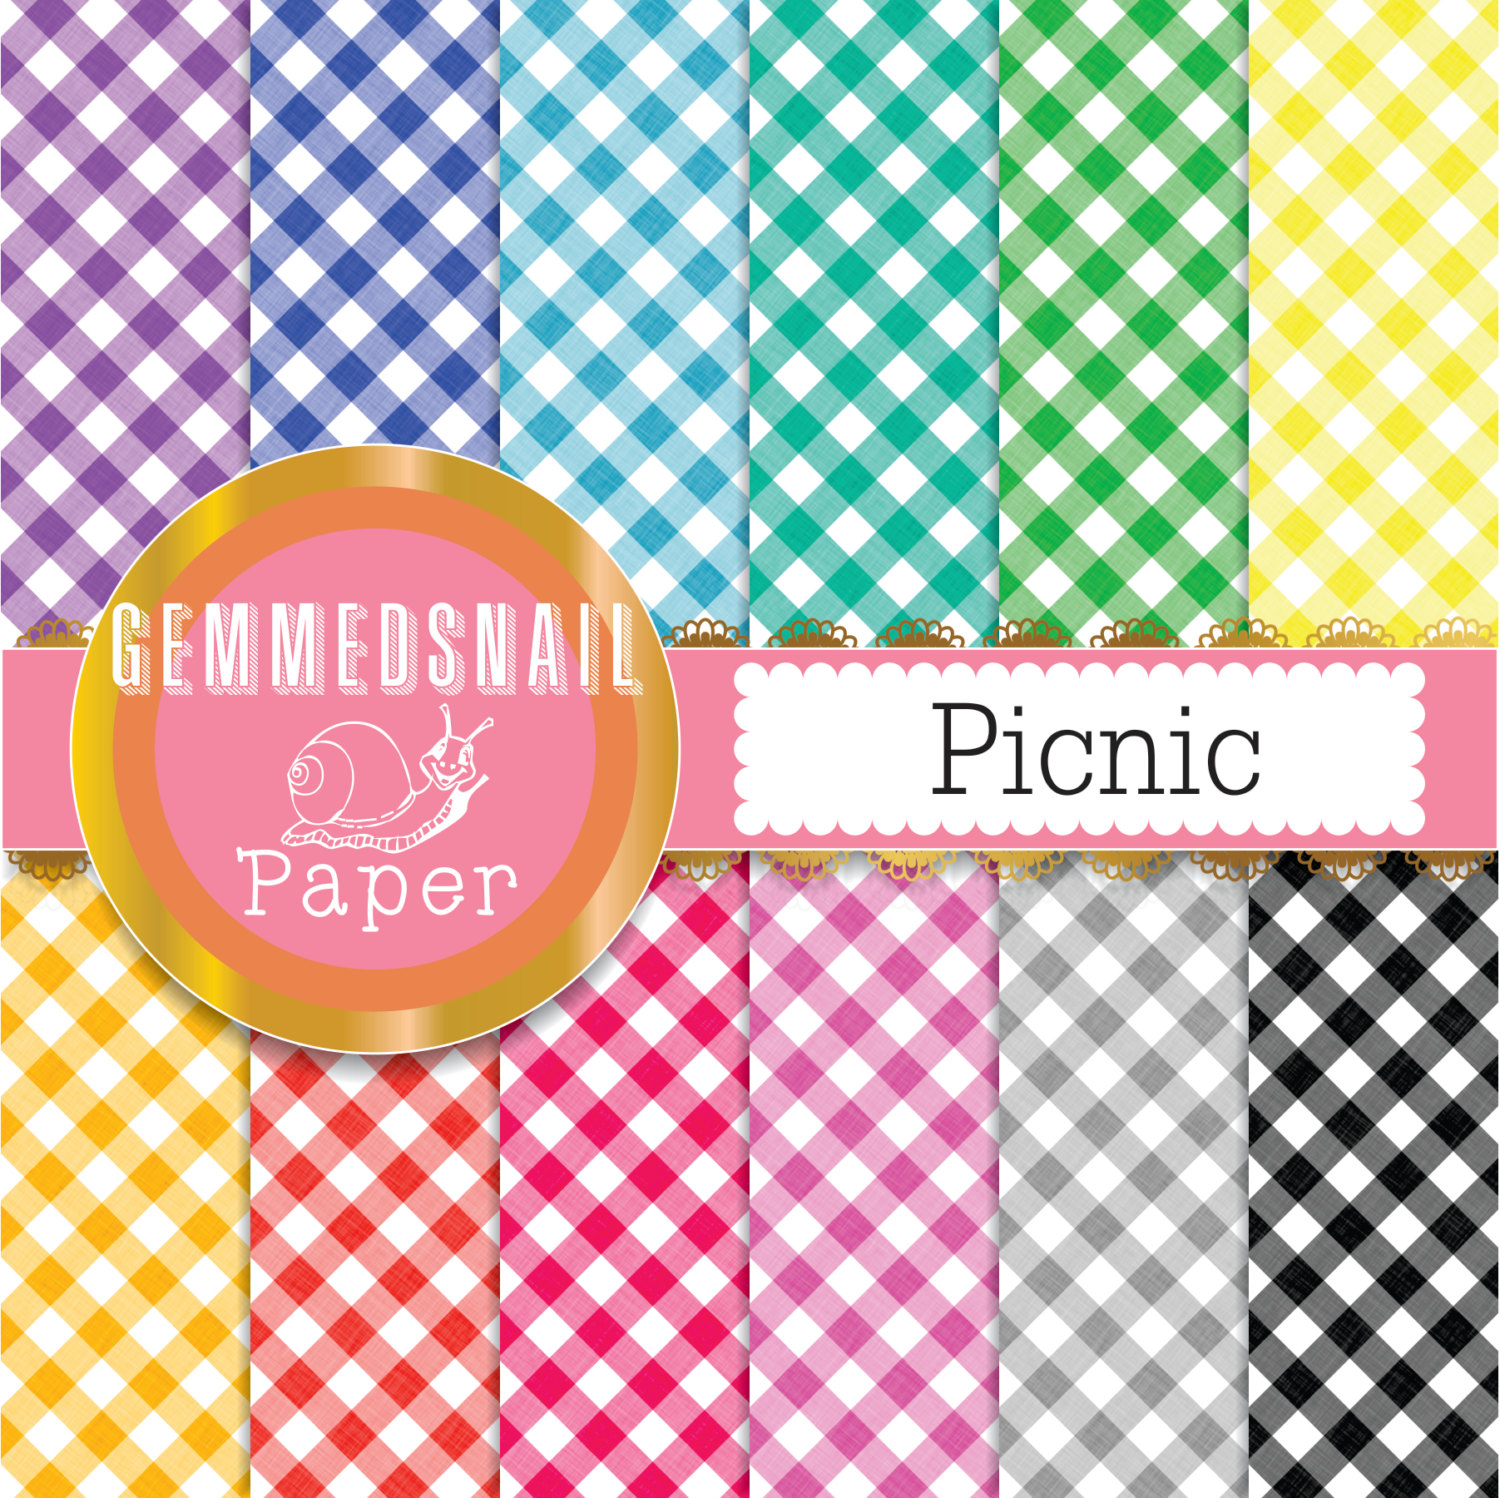 Gingham digital paper red, yellow and blue check gingham